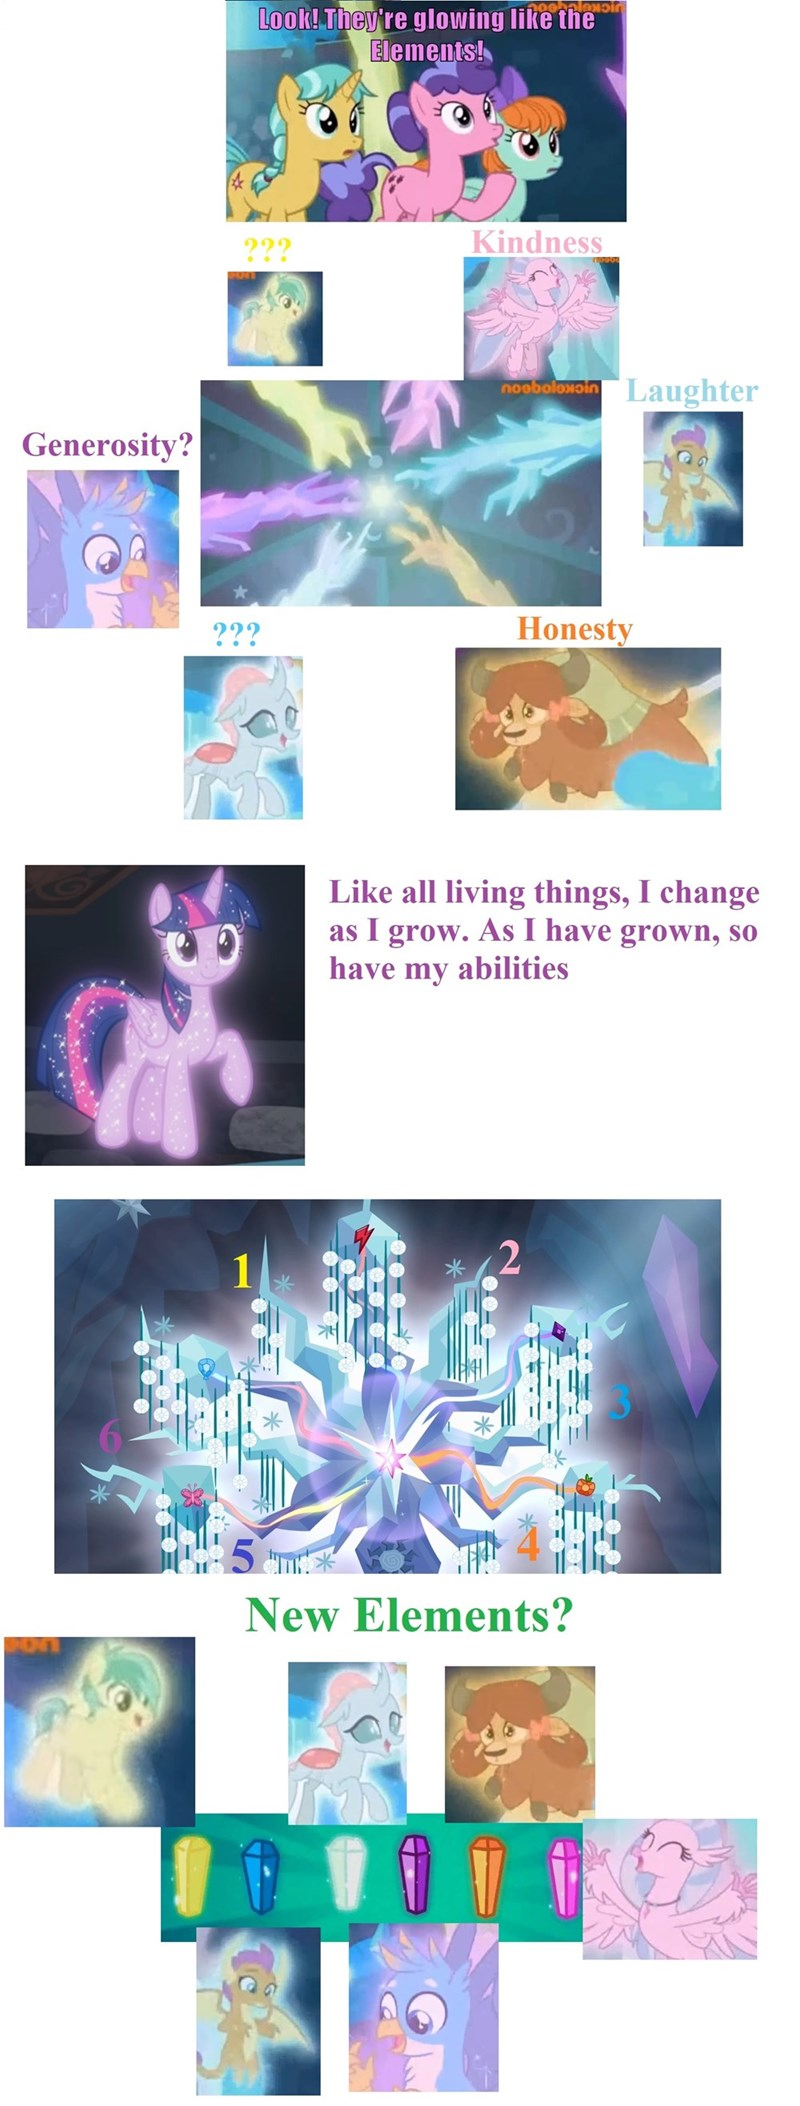 dragon yaks silverstream tree of harmony twilight sparkle screencap griffon smolder ocellus sandbar hippogriff school raze gallus yona changelings - 9225319424